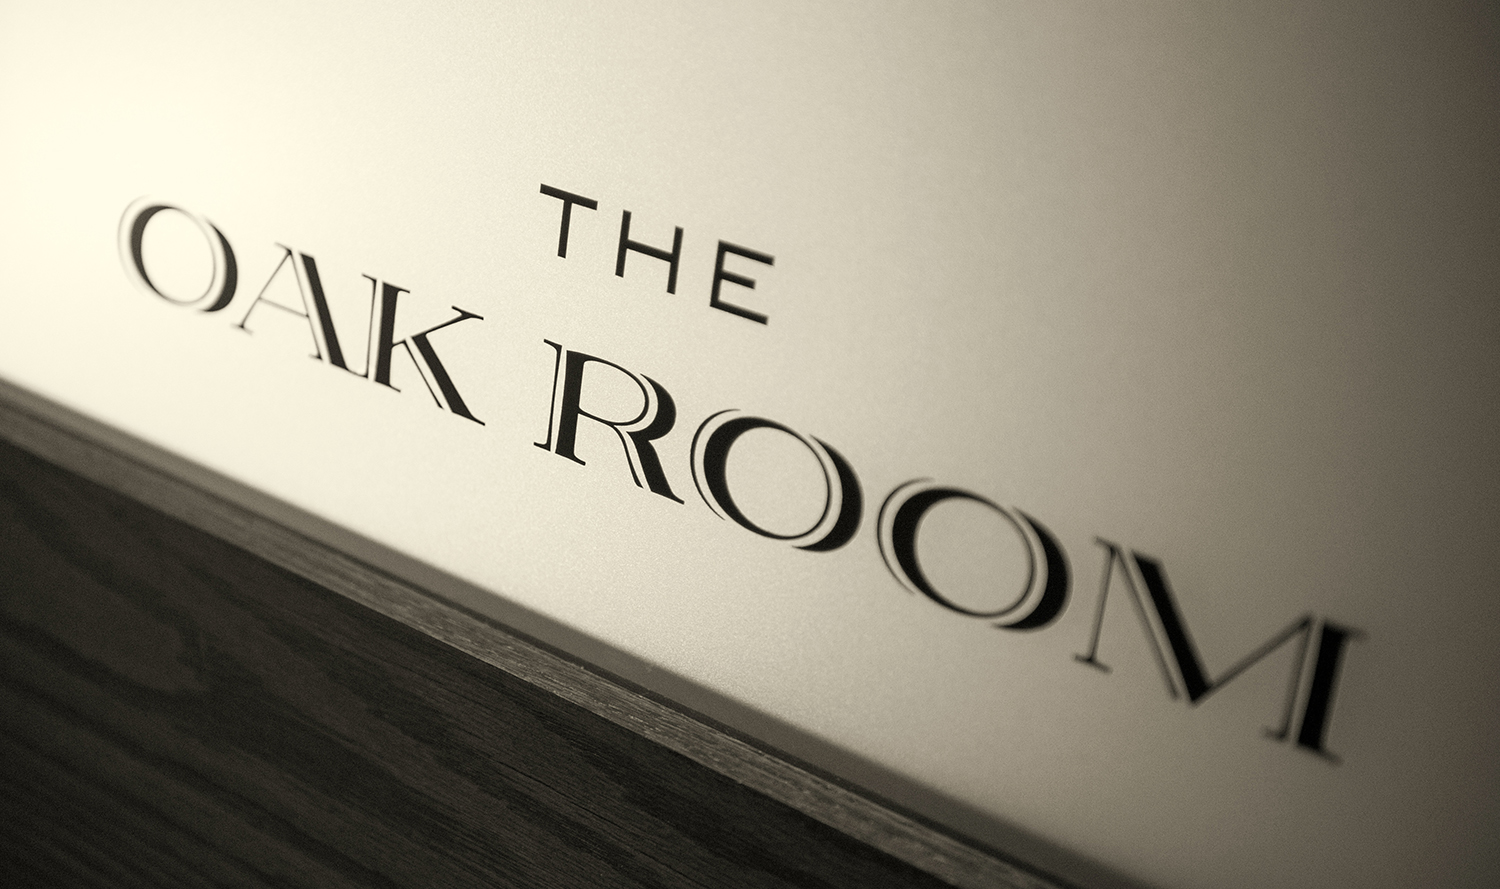 oak room lettering b&w web.jpg